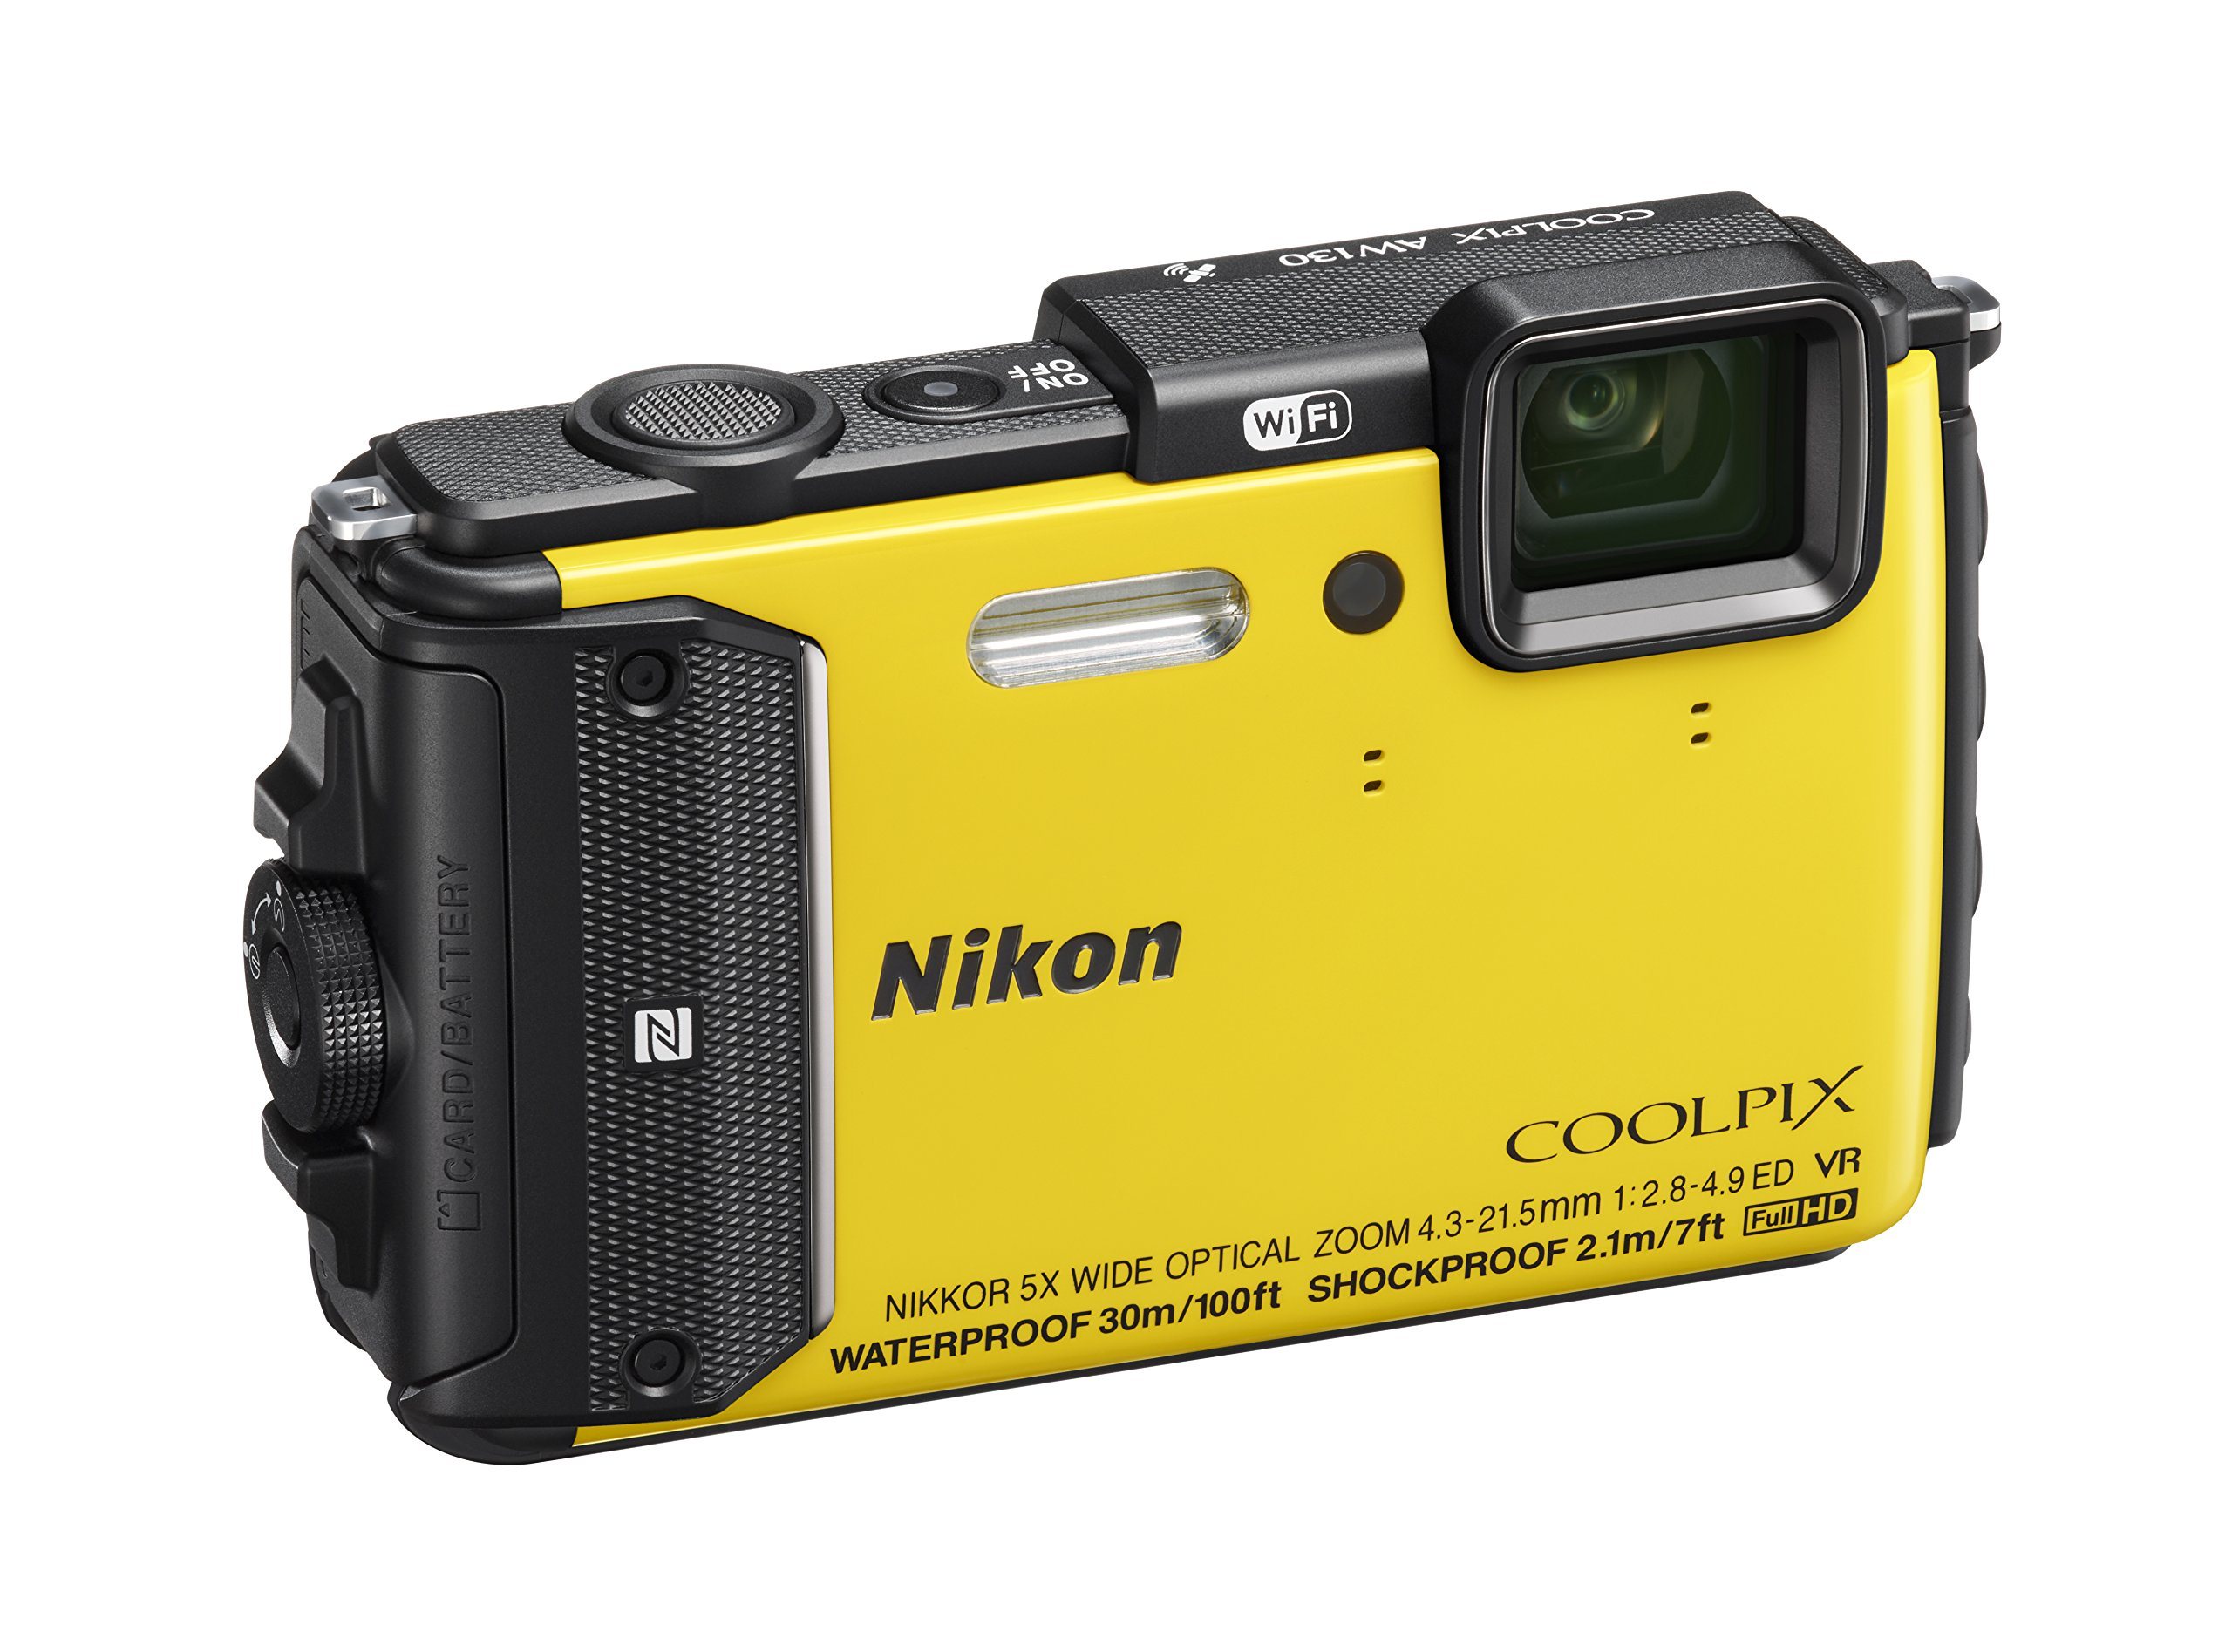 Nikon COOLPIX AW130 Waterproof Digital Camera with Built-In Wi-Fi (Yellow) by Nikon